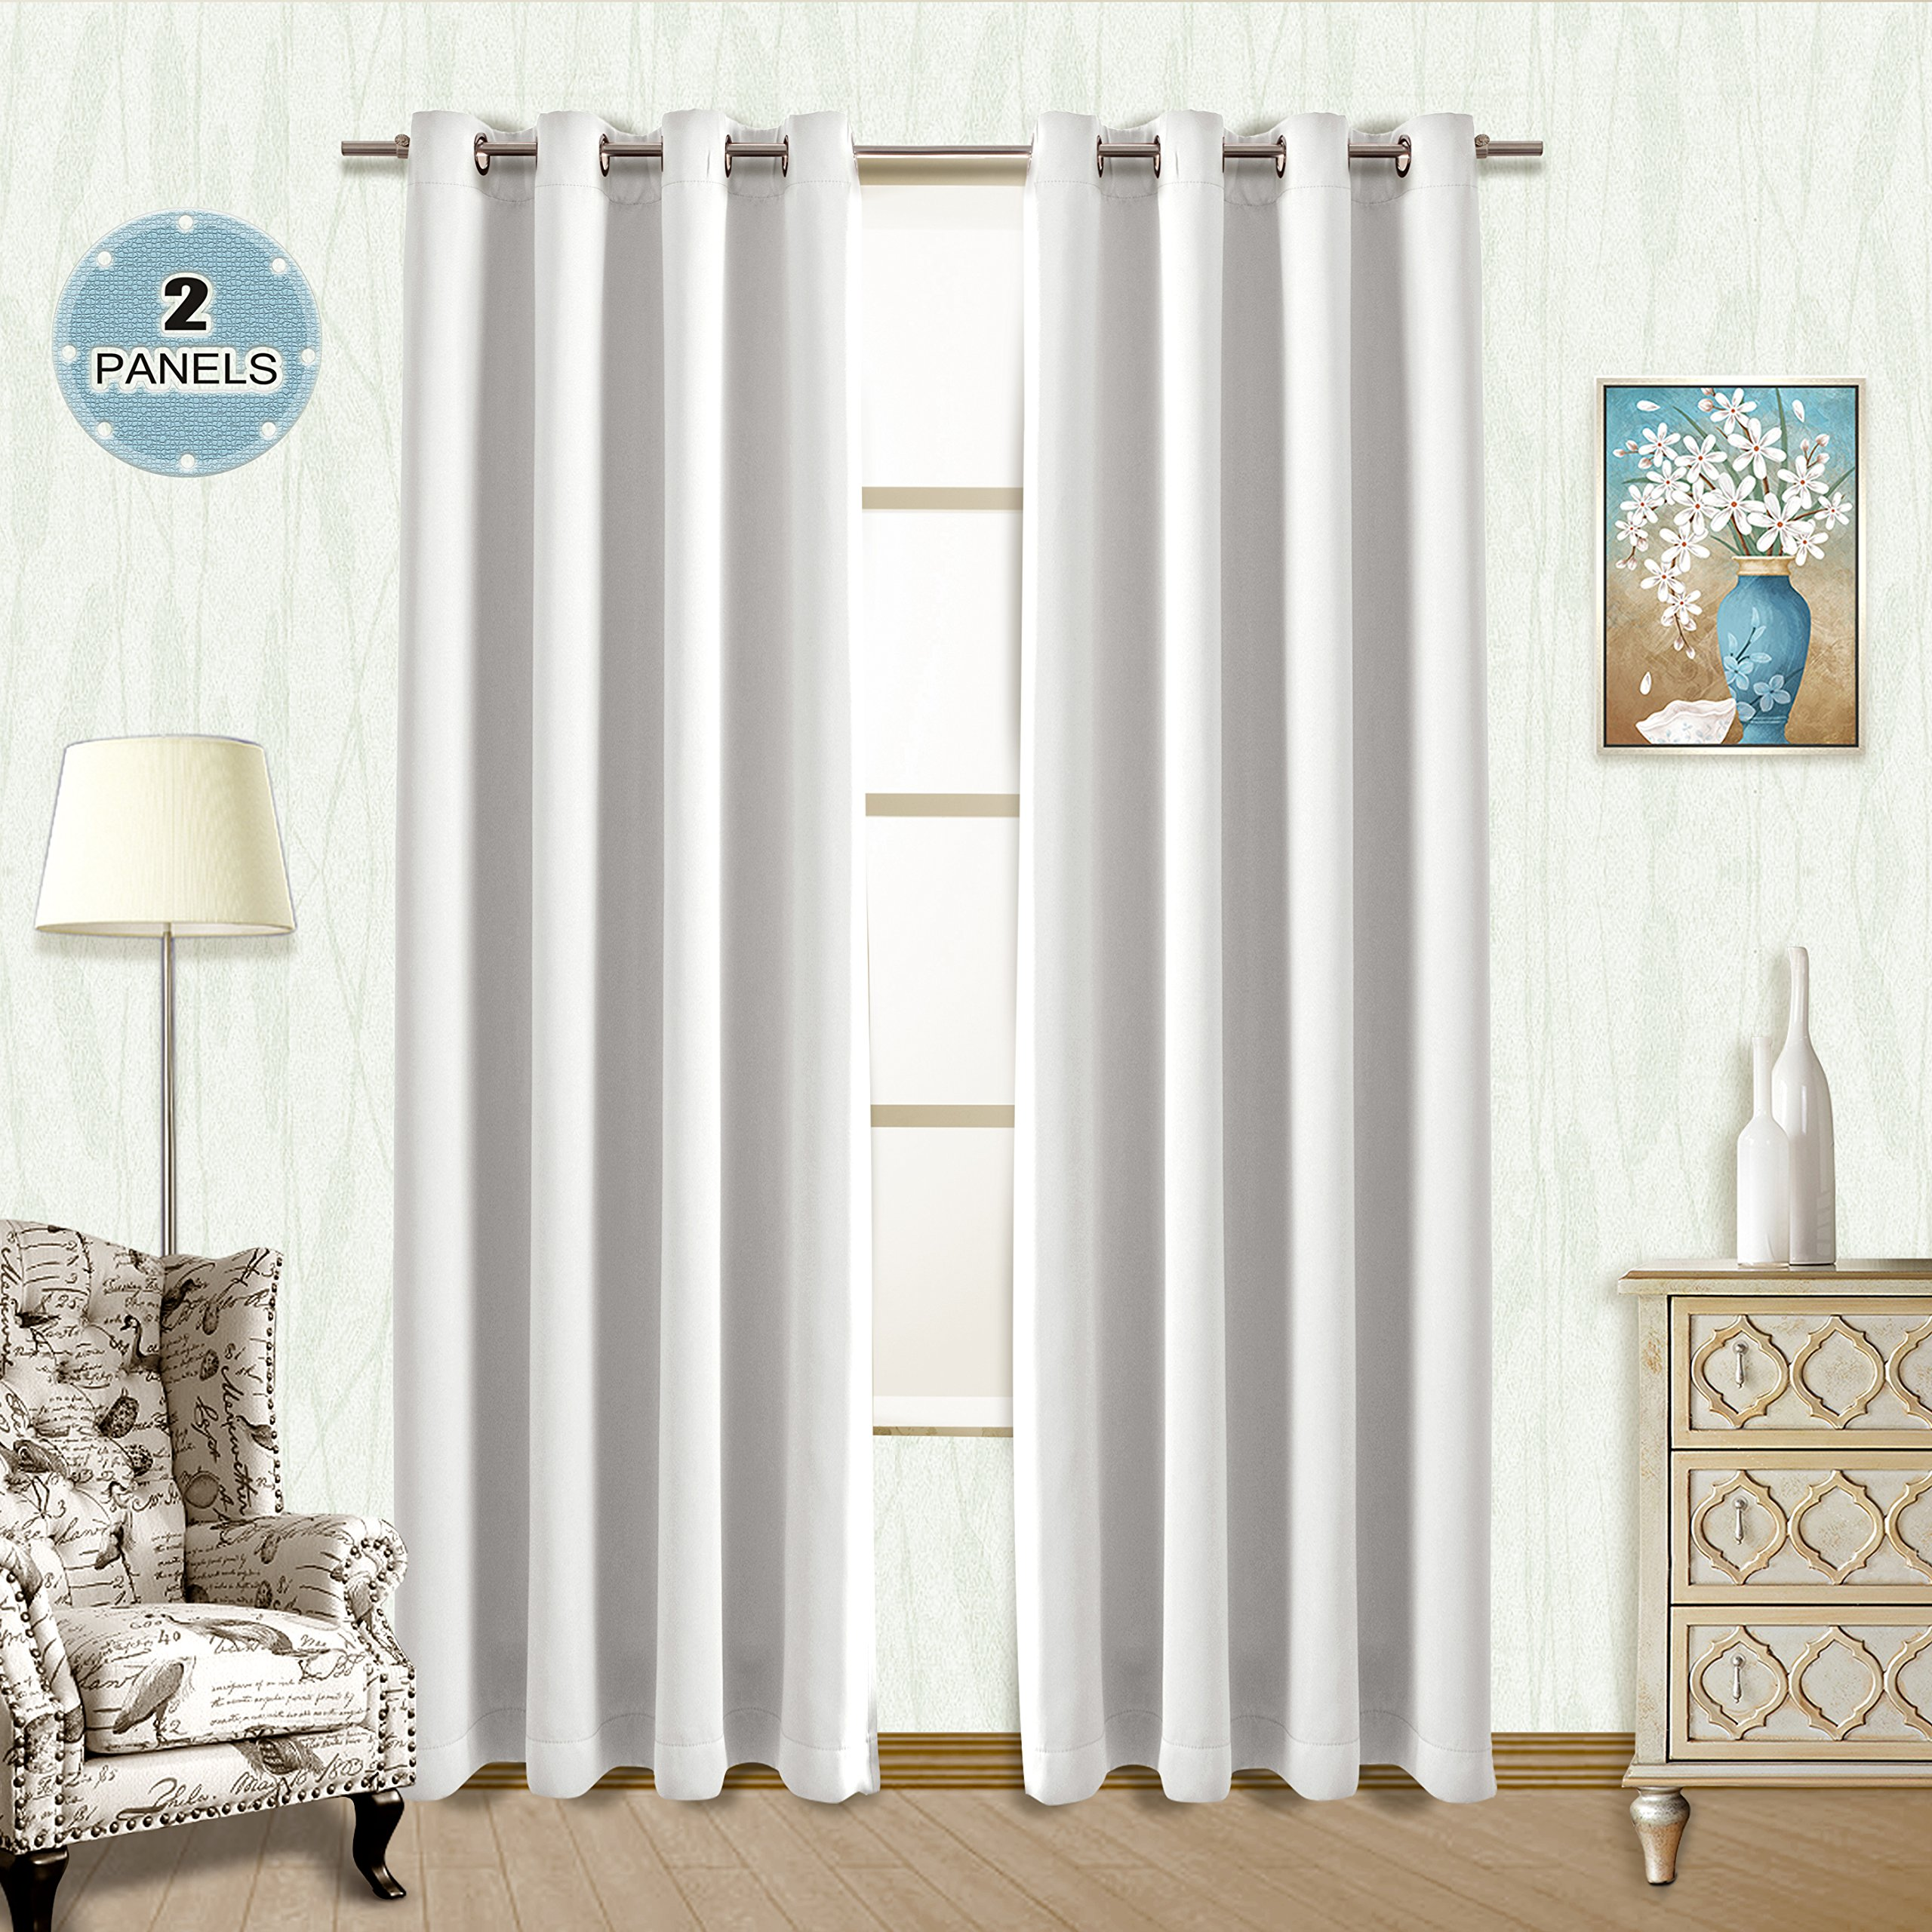 Cheap Extra Long Blackout Curtains Find Extra Long Blackout Curtains Deals On Line At Alibaba Com